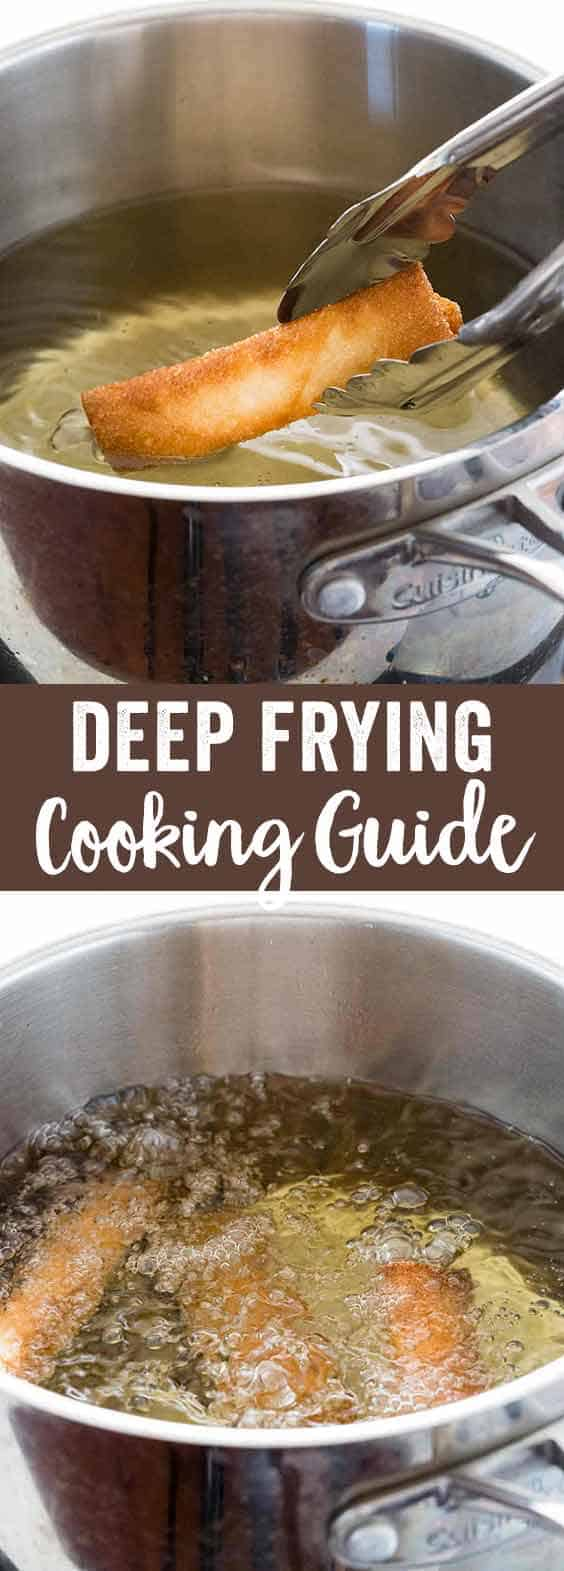 Deep frying is a dry-heat cooking method that yields foods that have a crunchy golden brown surface and tender interior. Learn how to deep fry, choosing the right oil, and the benefits of using this technique.